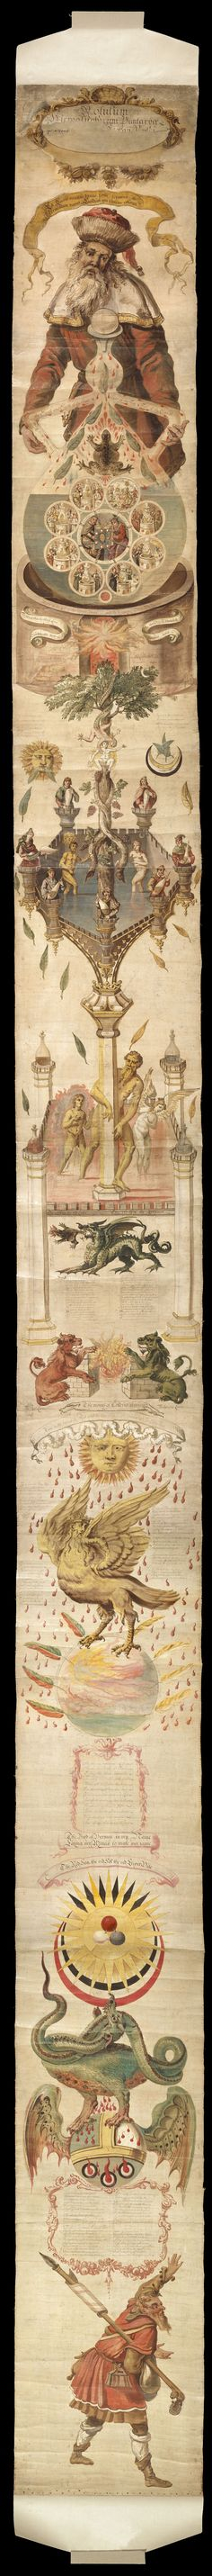 17th Century copy of the Ripley Scroll (originally illustrated by George Ripley, ca. 1460)